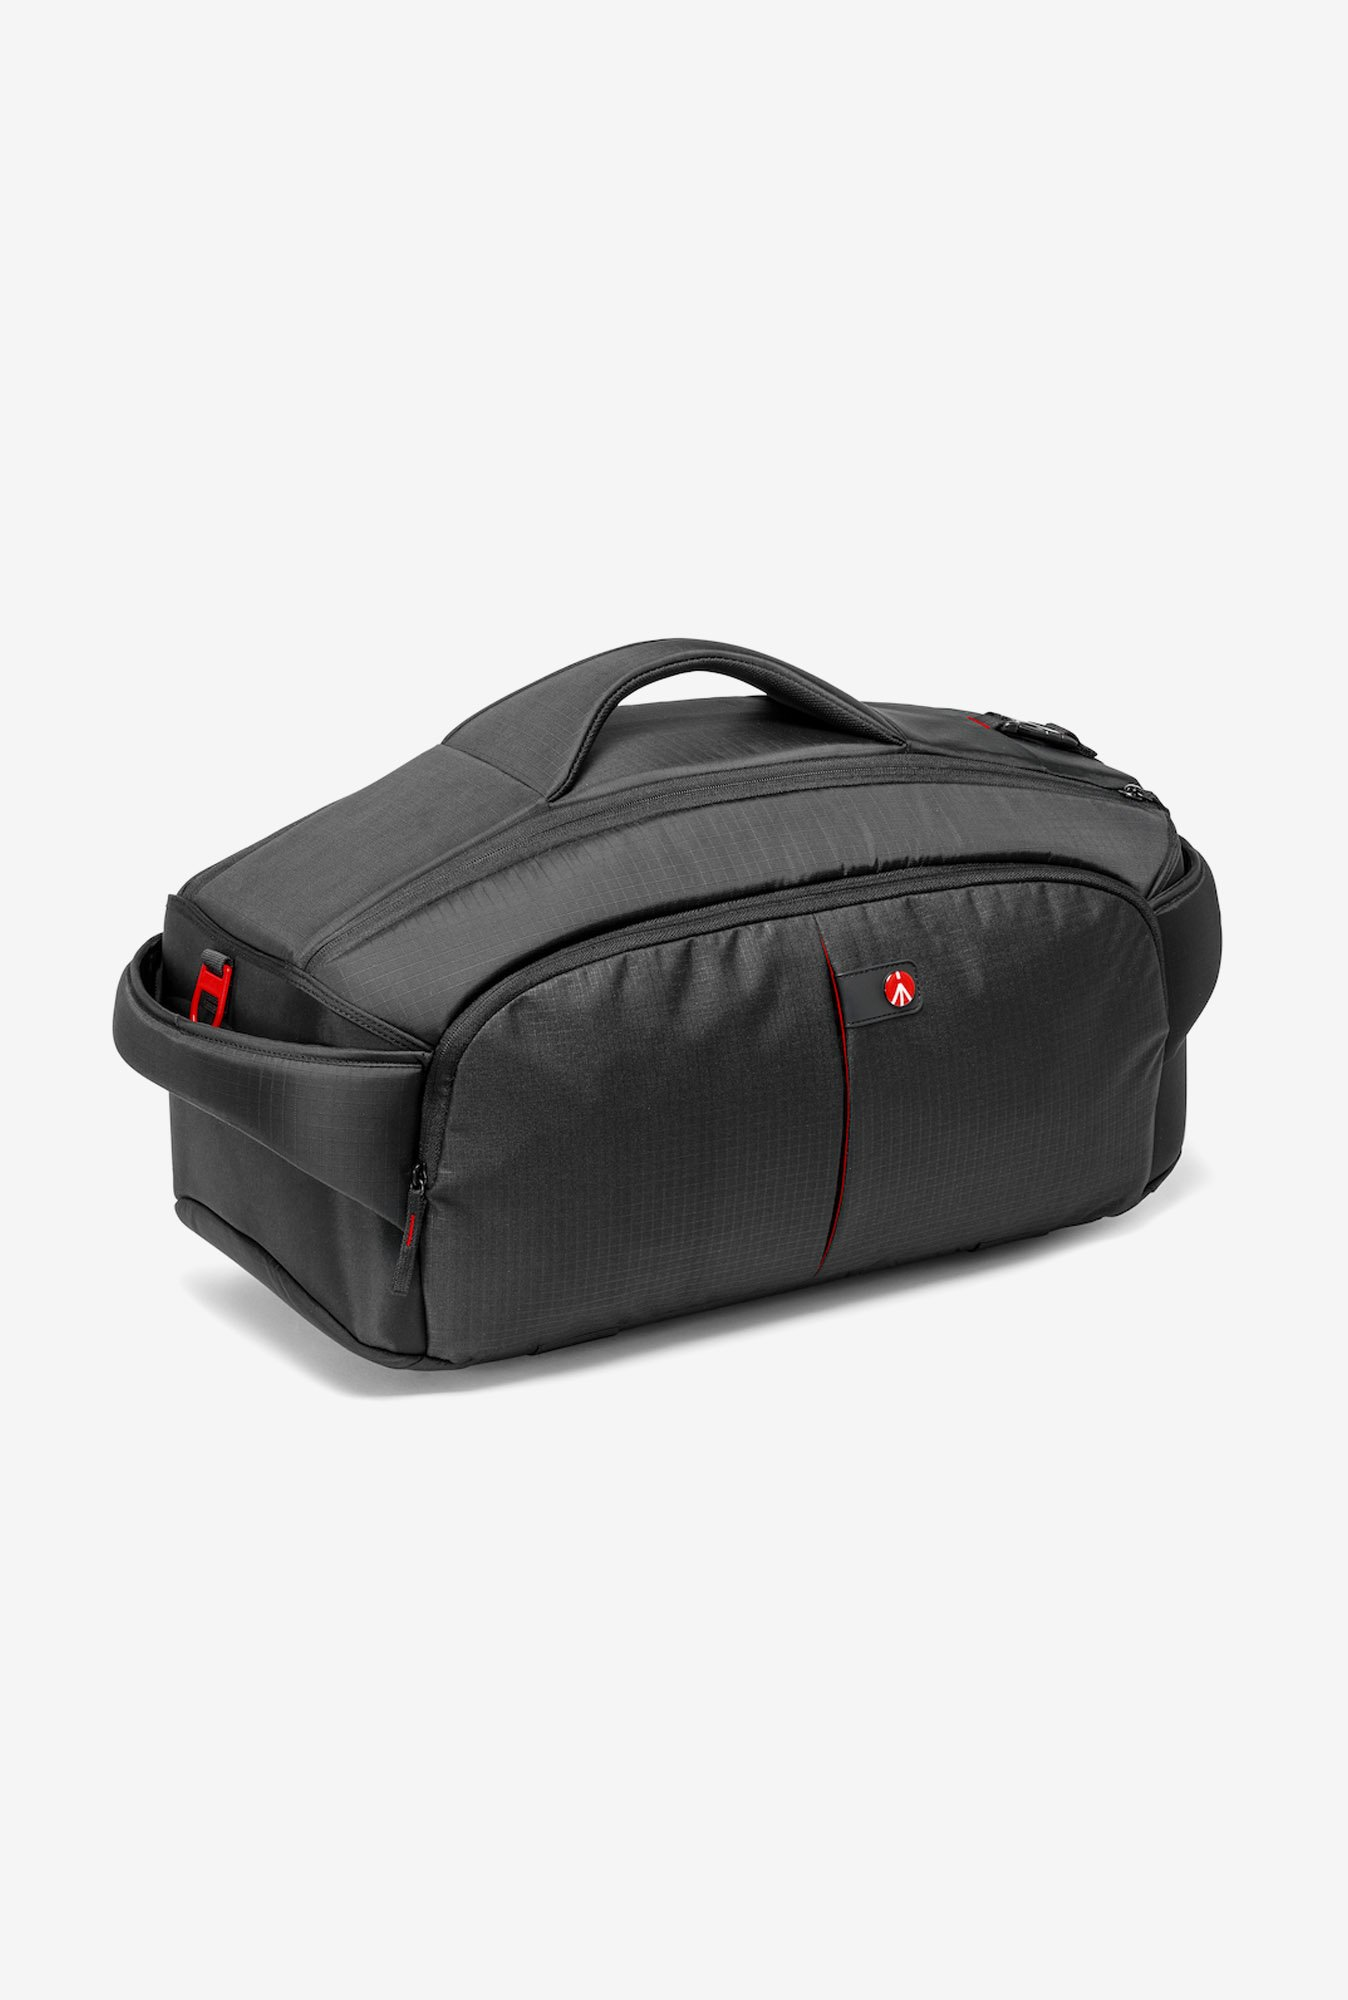 Manfrotto MB PL-CC-195 Camera Bag Black